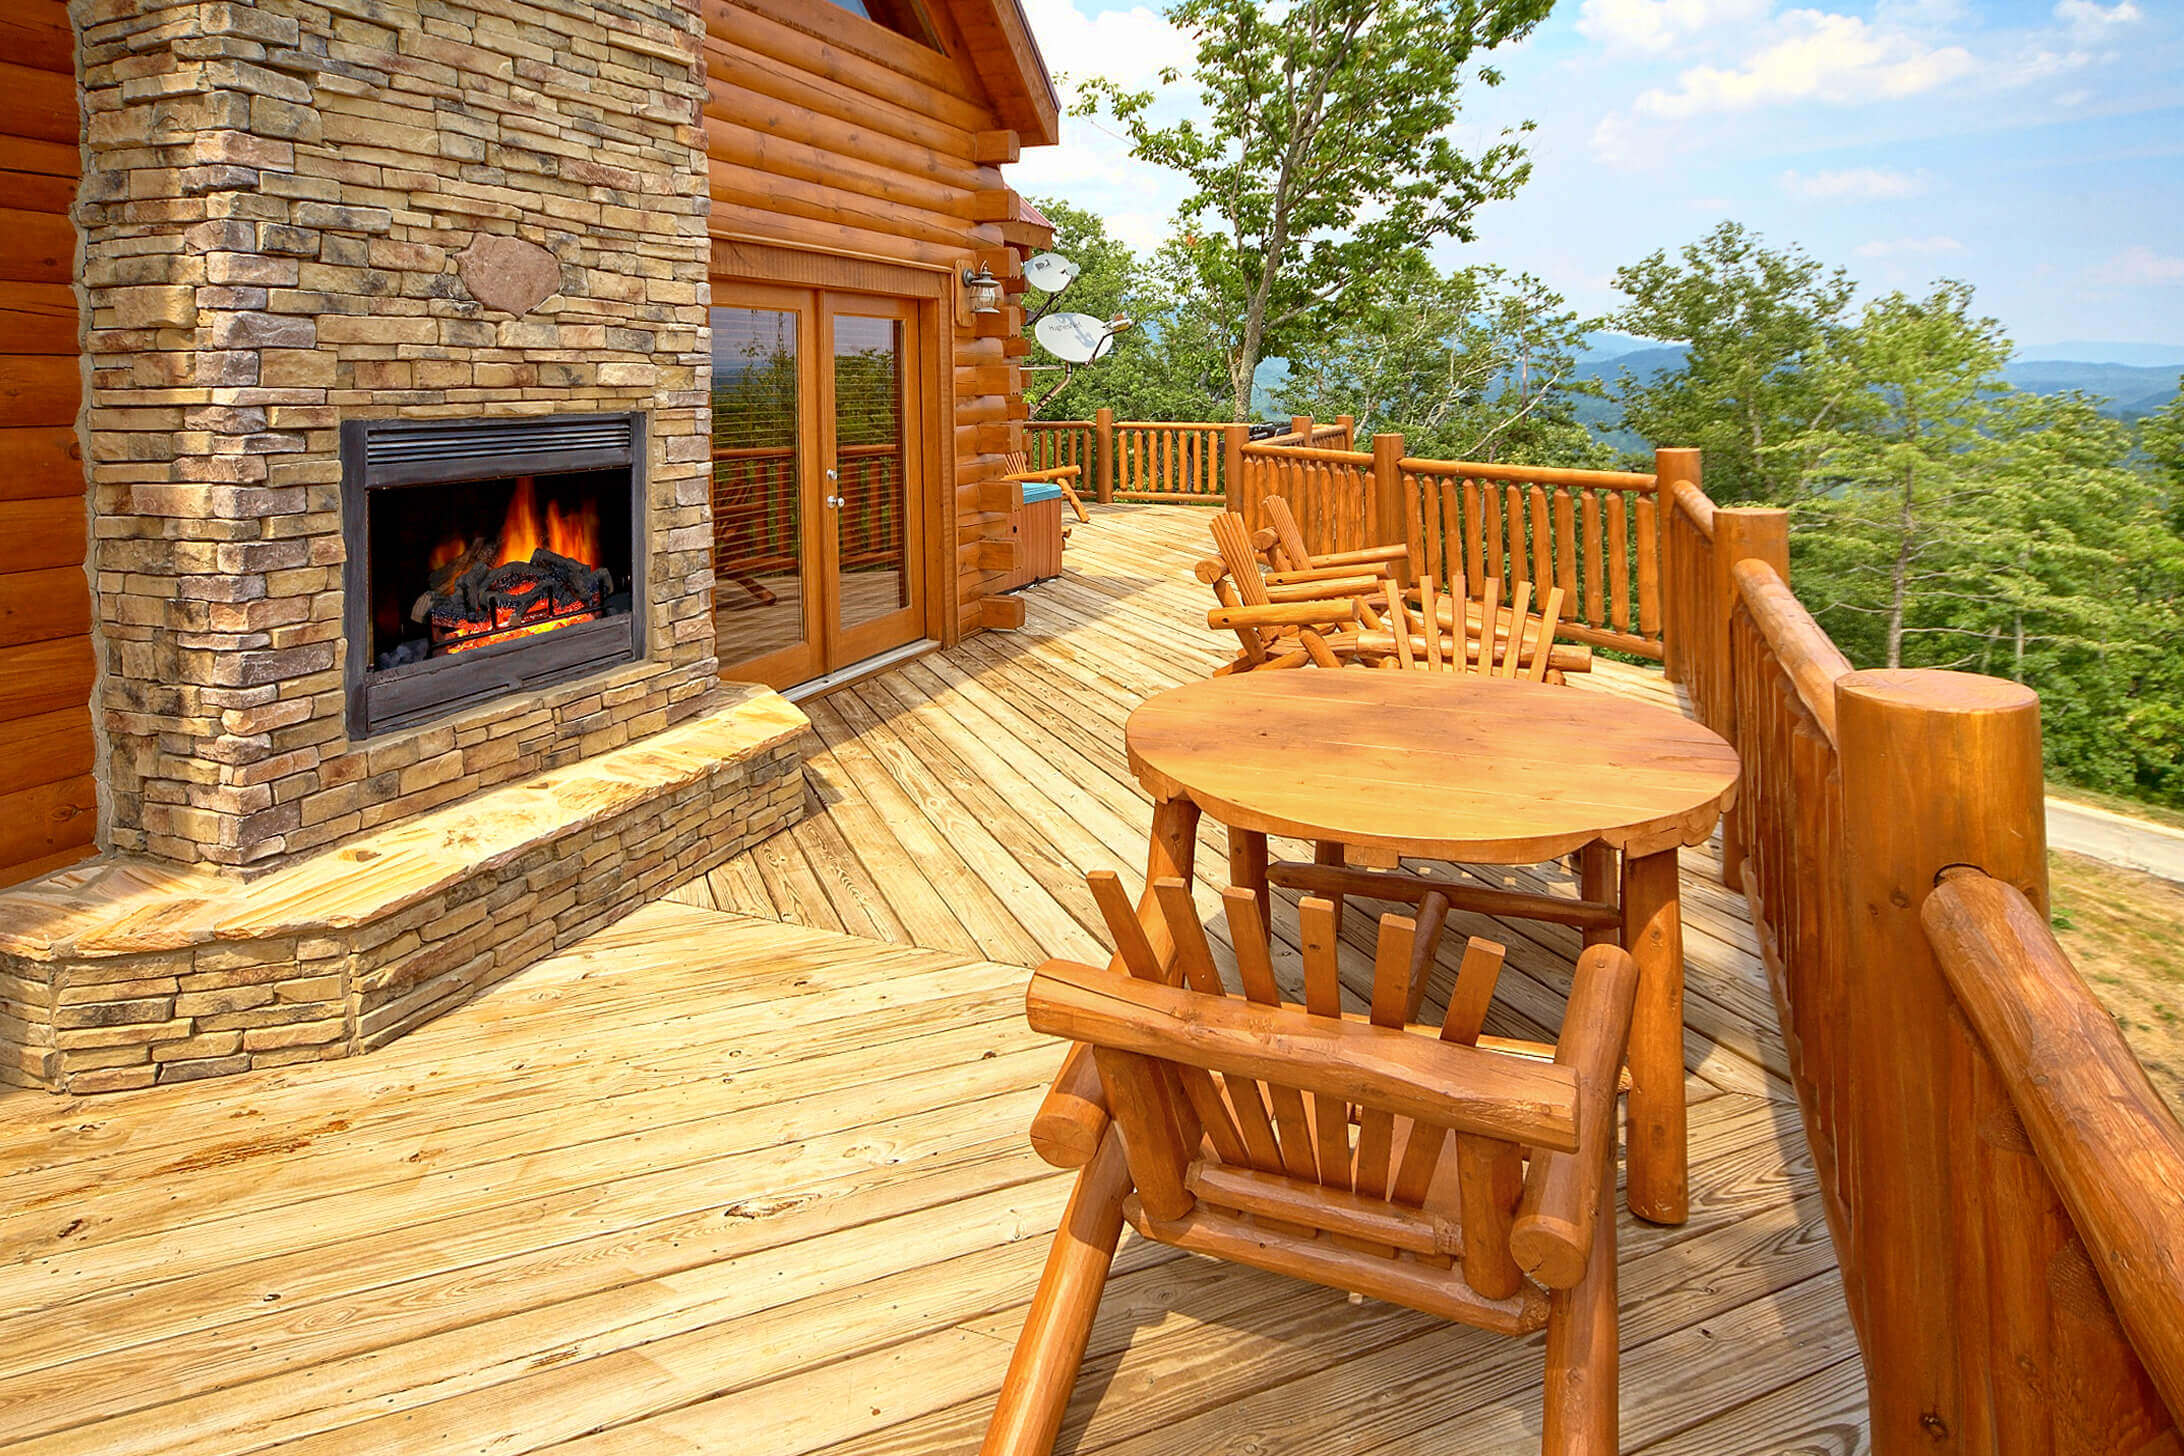 3 bedroom cabins in gatlinburg tn for rent elk springs for Best mountain view cabins in gatlinburg tn